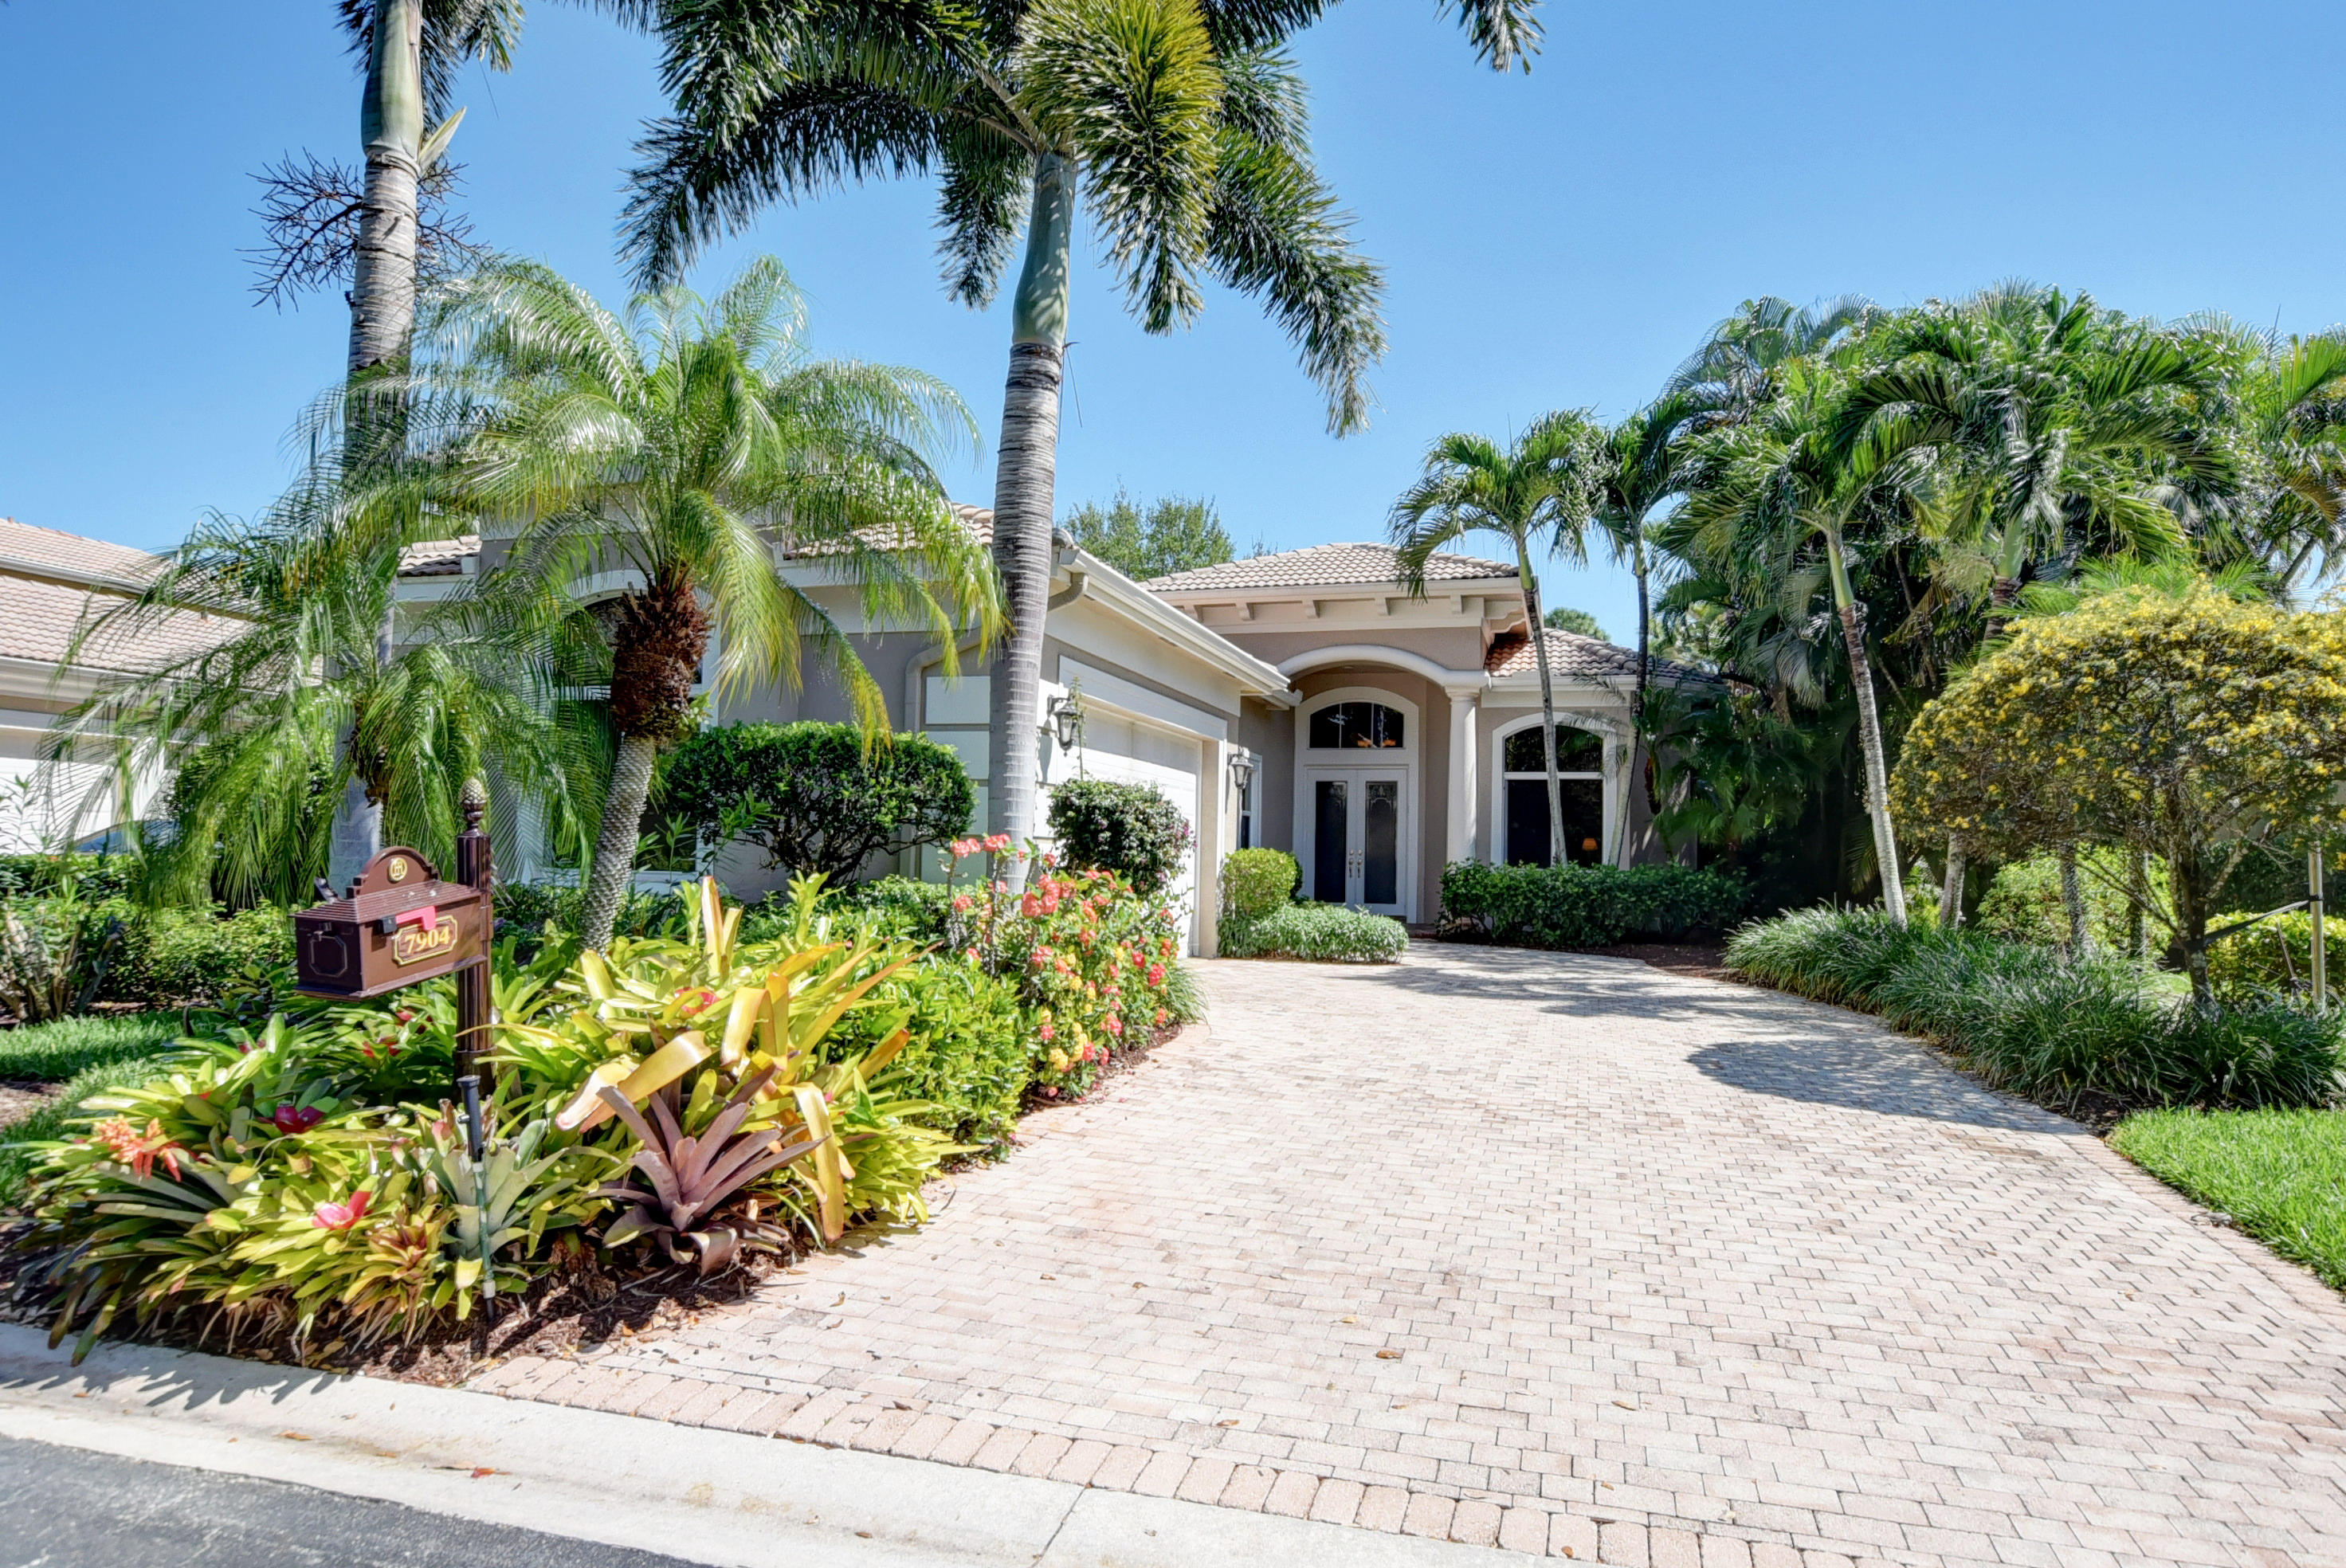 7904 Villa D Este Way  Delray Beach, FL 33446